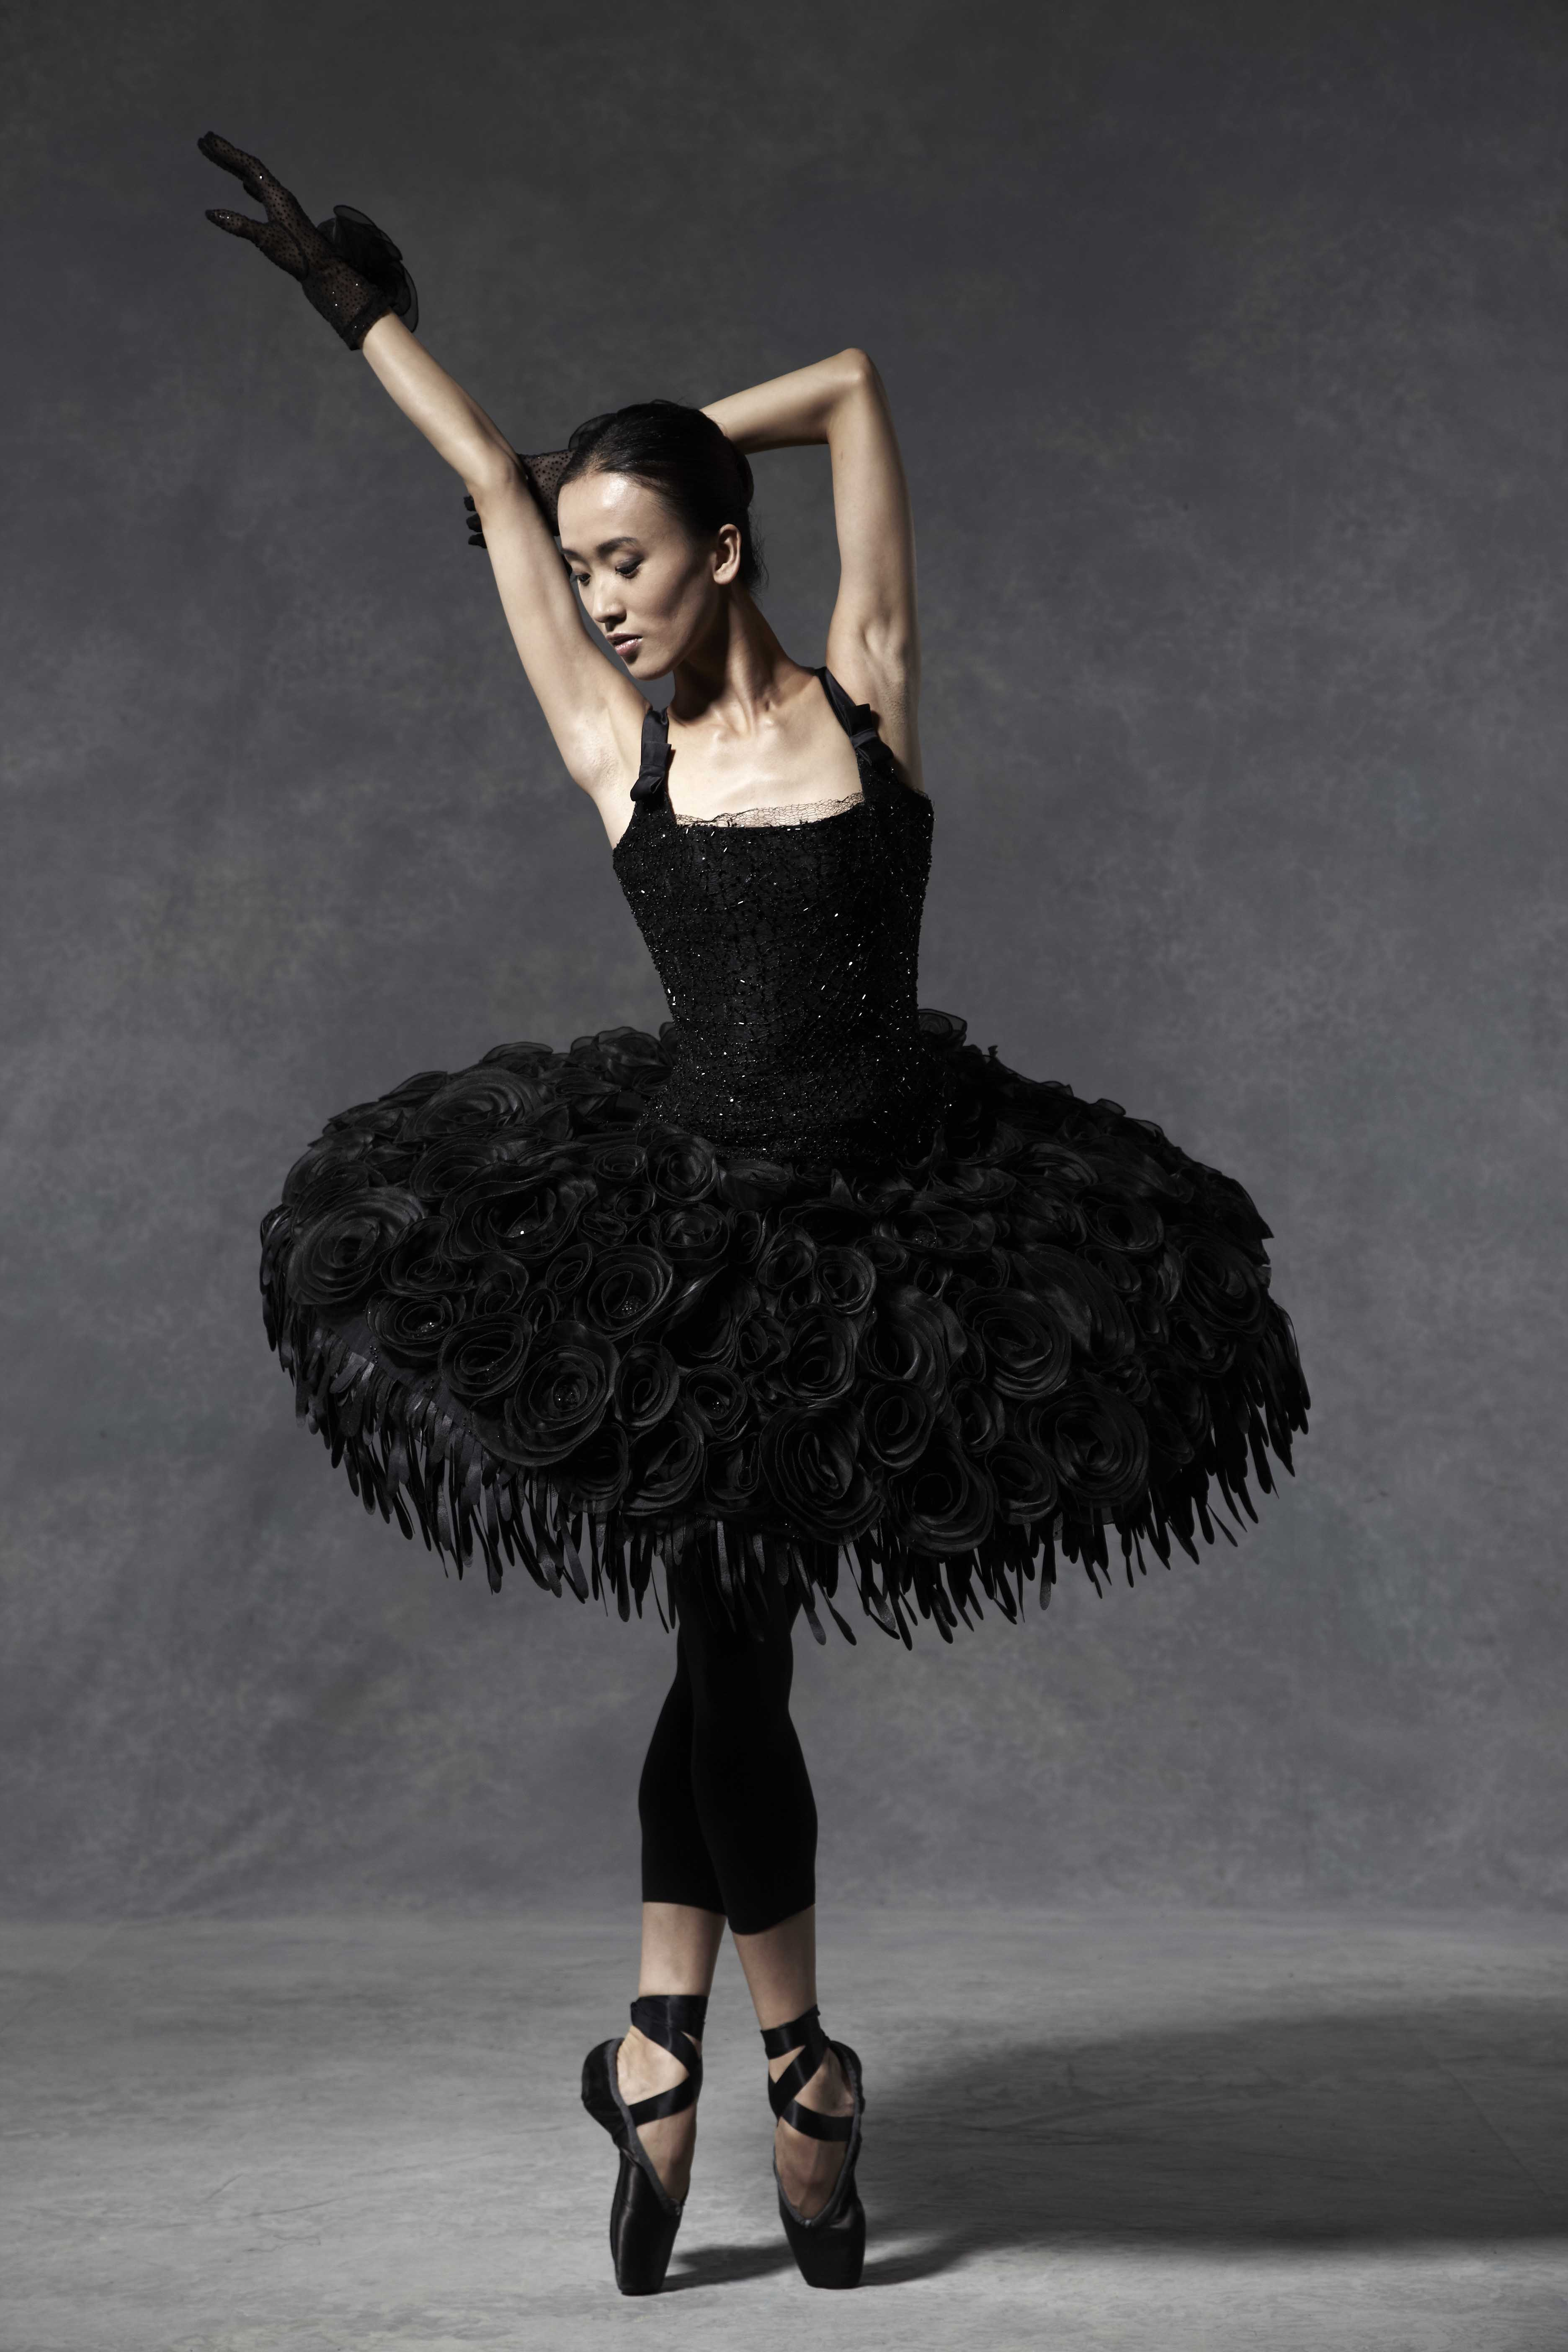 Product Features Dancewear costume for training, gymnastics, ballet and dance use only.